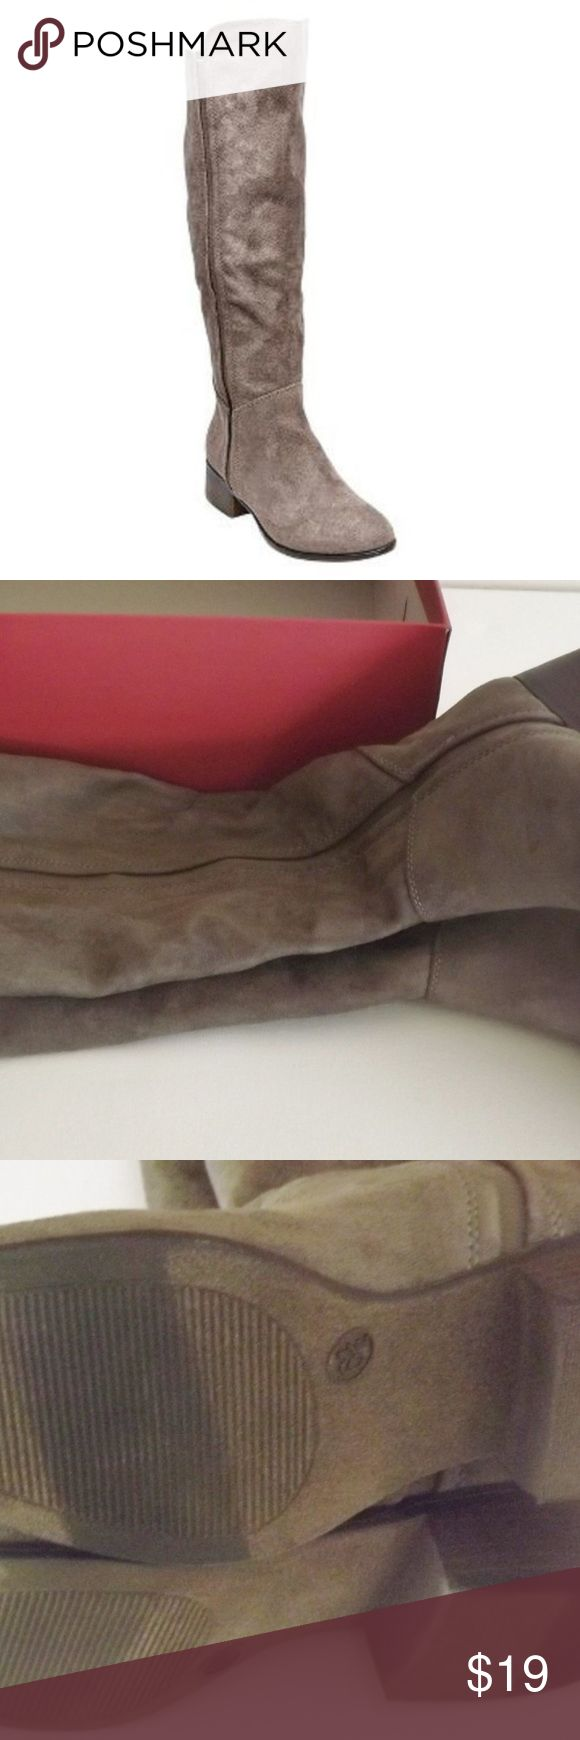 Evie Knee-High Pull-on Faux Suede Riding Boots NWT Merona Evie Tall Knee-High Pull-on Faux Suede Gray/Grey Riding Boots NWT New with Tag and Original Box! Great for Fall!!  Boot Style: Knee Boot Shaft Circumference: Approximately 15.0 inches  Boot Shaft Height: Approximately 15.0 inches  Upper Construction: Polyester  Heel: Approximately 1.5 inches  Outsole Construction: Smooth outsole;  Polyester Merona Shoes Heeled Boots